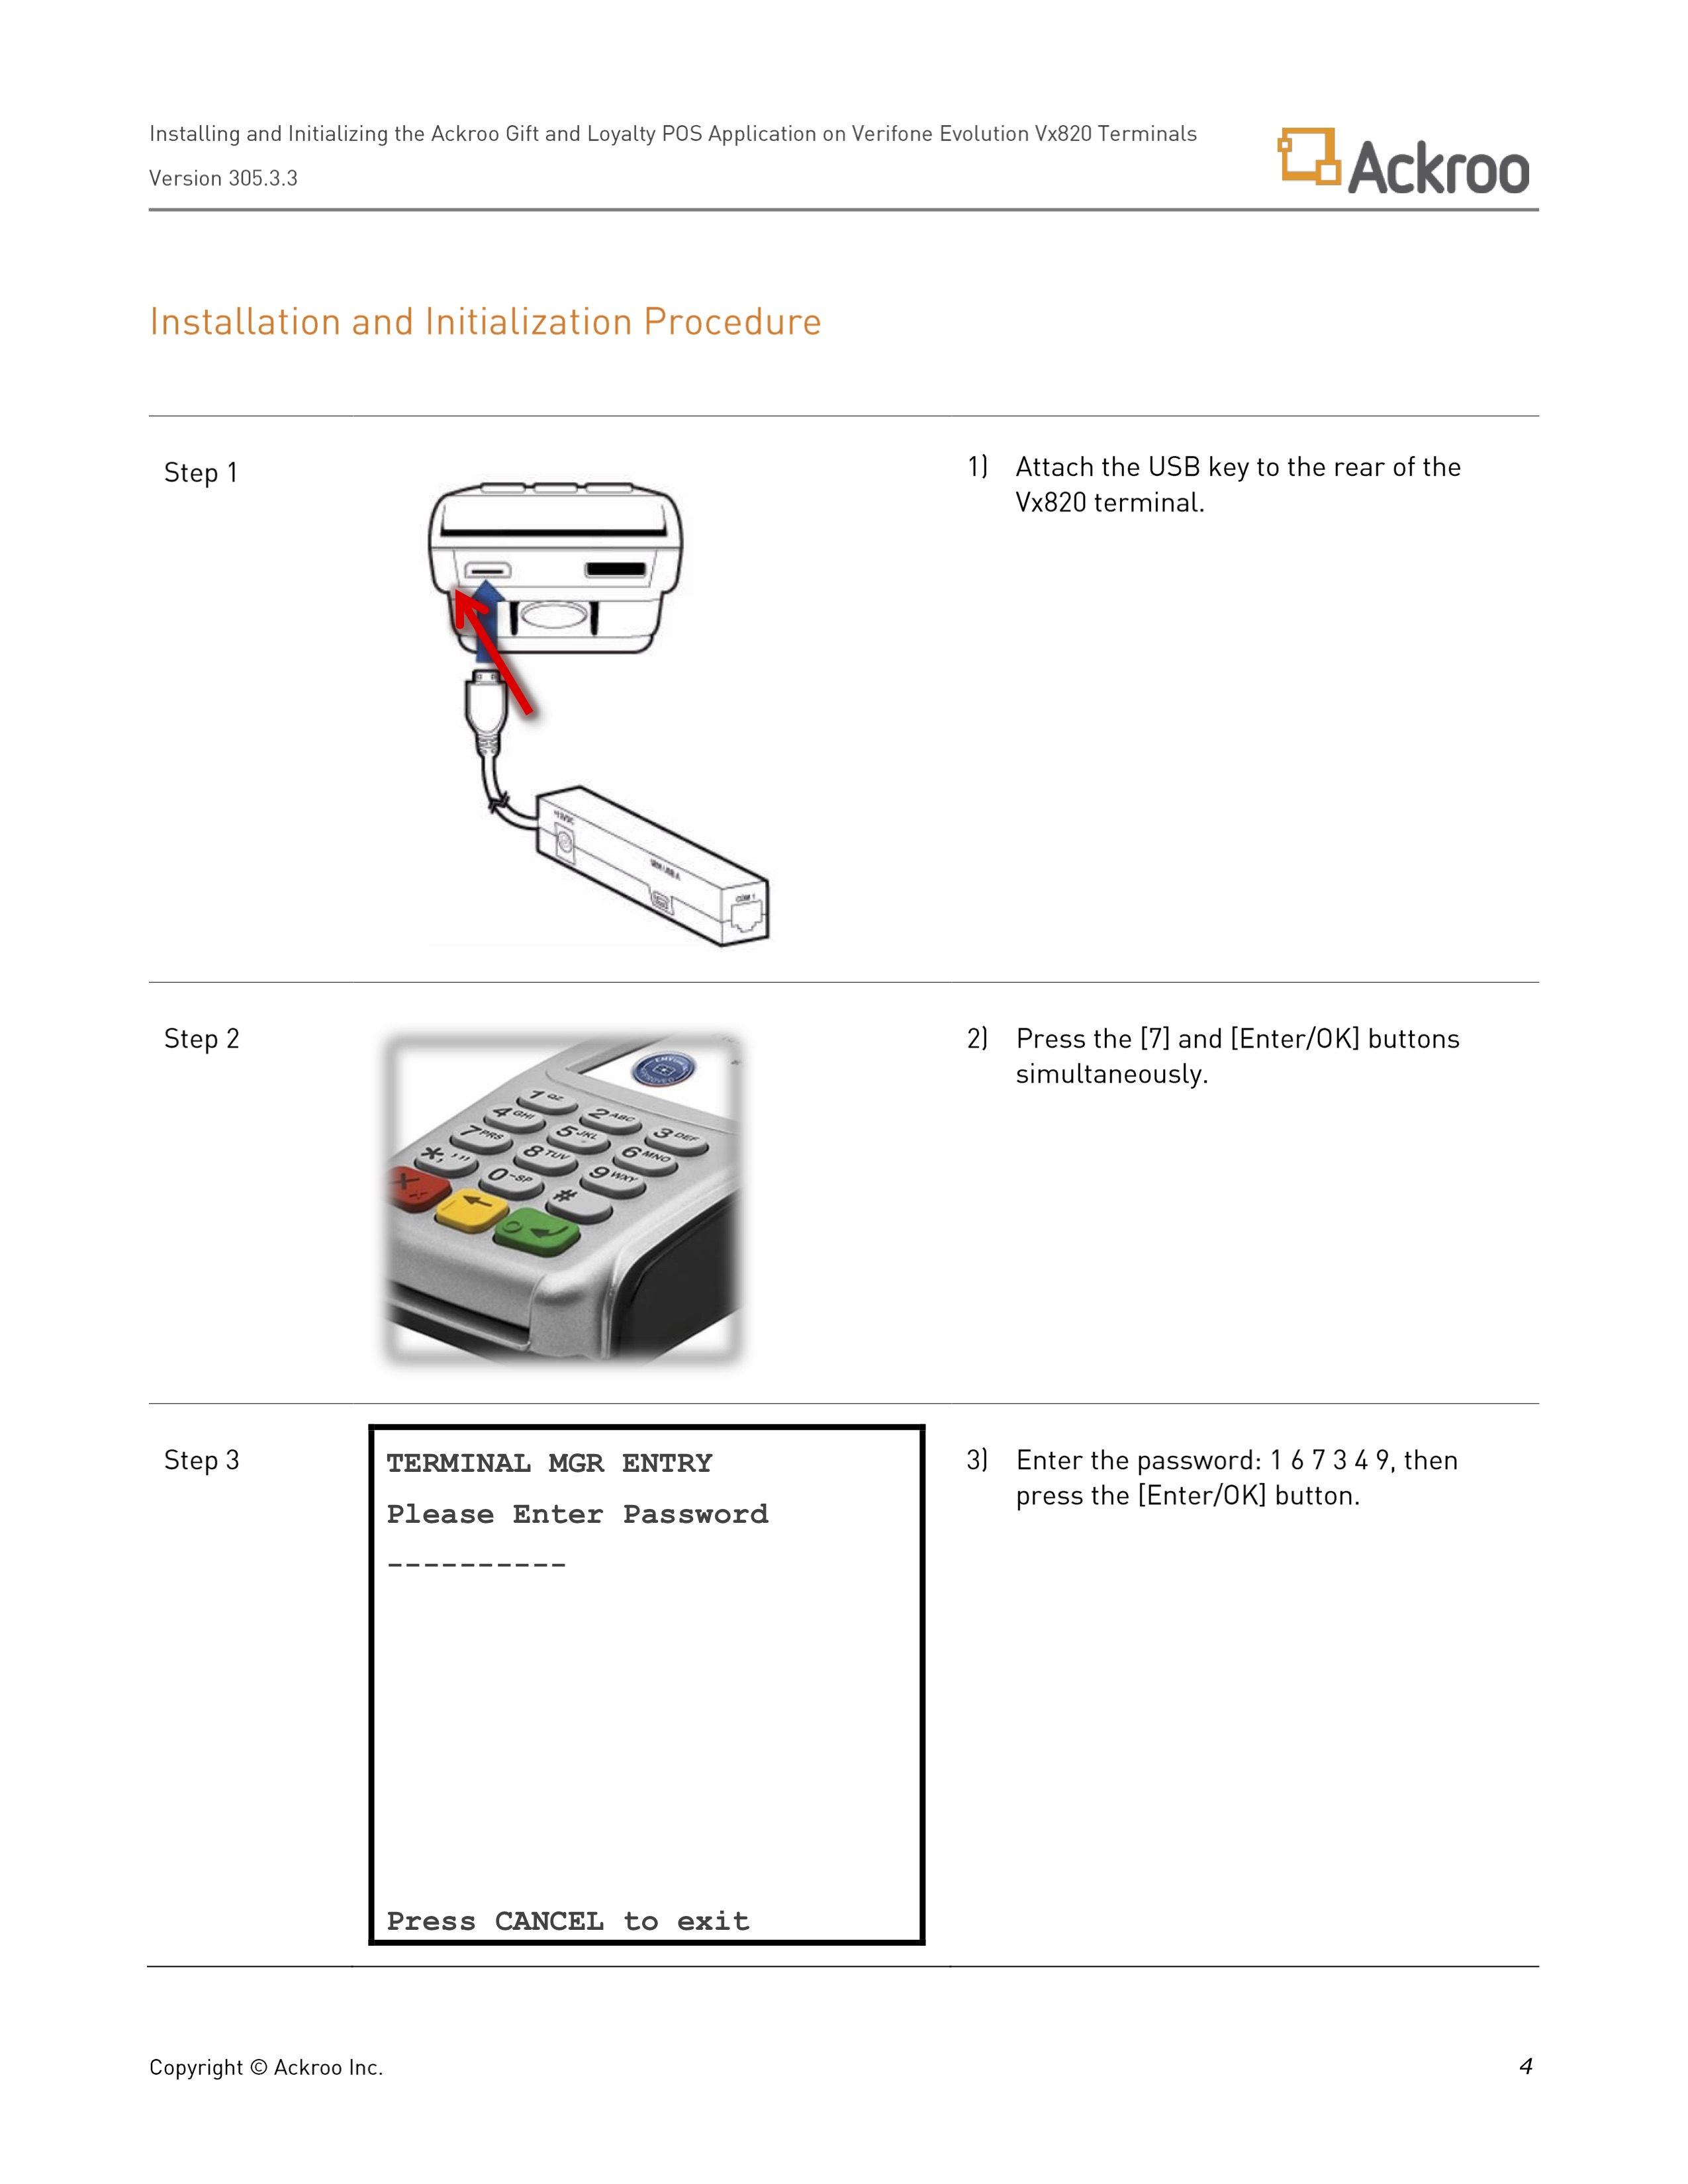 CHASE_-_Verifone_Vx680_USB_Download_Instructions-AKR3_-_page_4.jpg